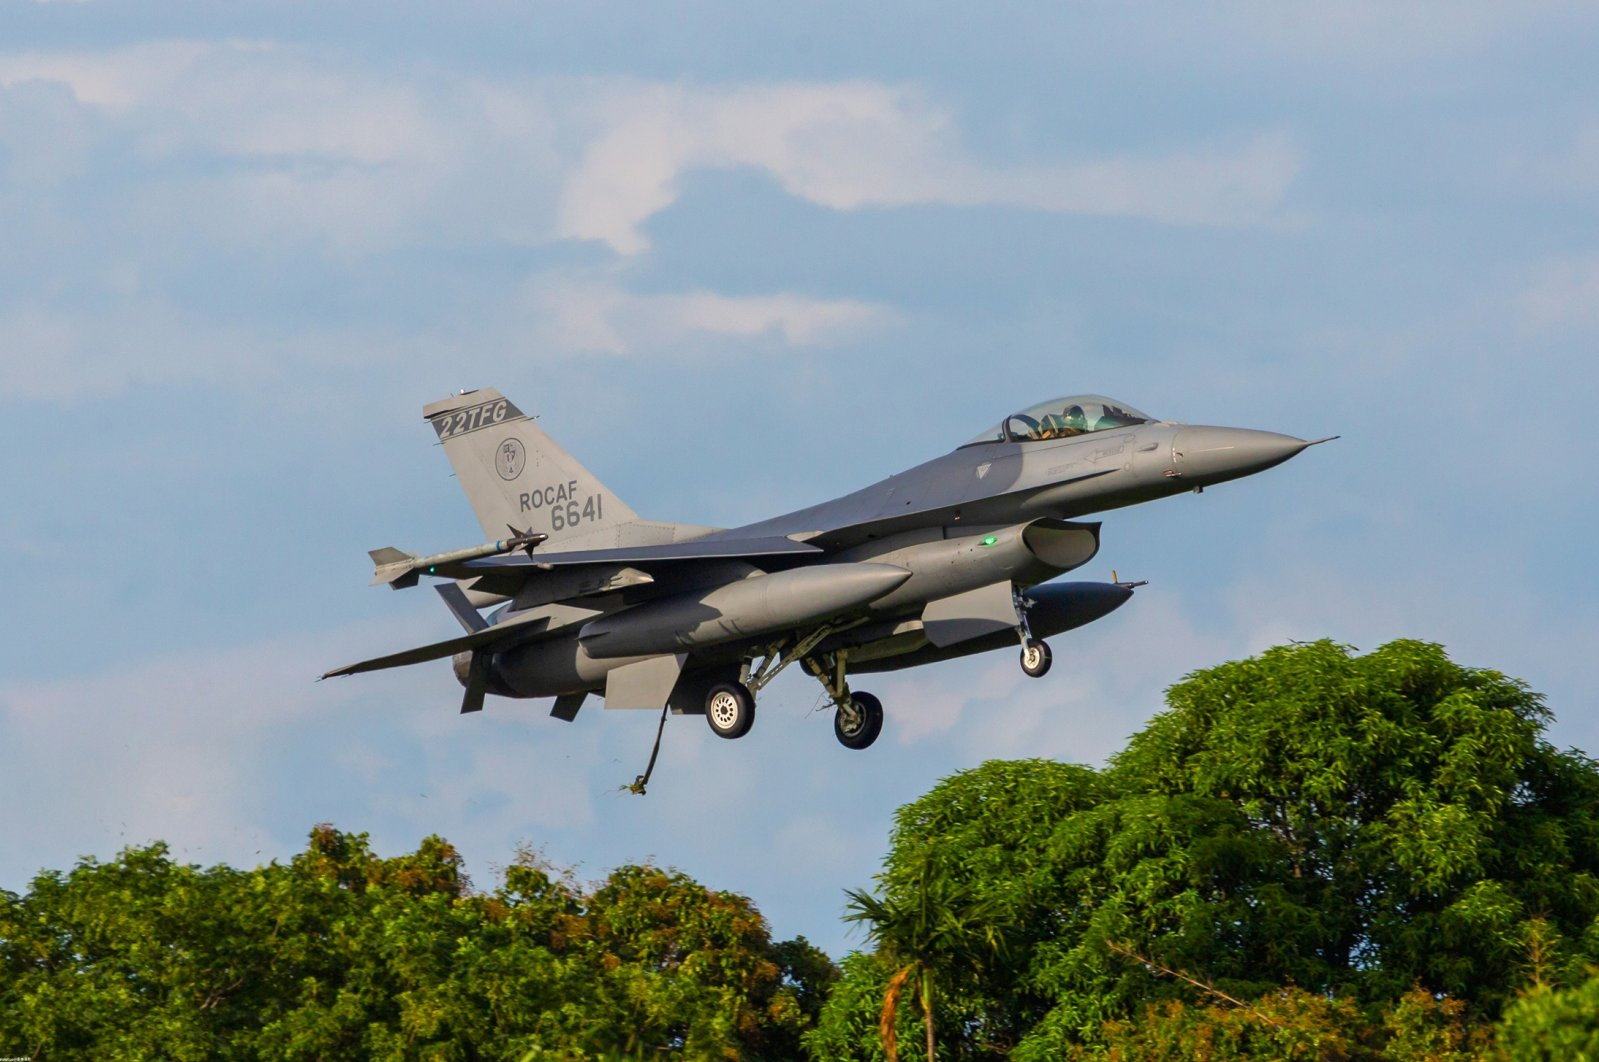 A F-16V belonging to Taiwan prepares for landing, releasing a tail hook for emergency use only, Chiayi, Taiwan, June 5, 2021. (Shutterstock Photo)